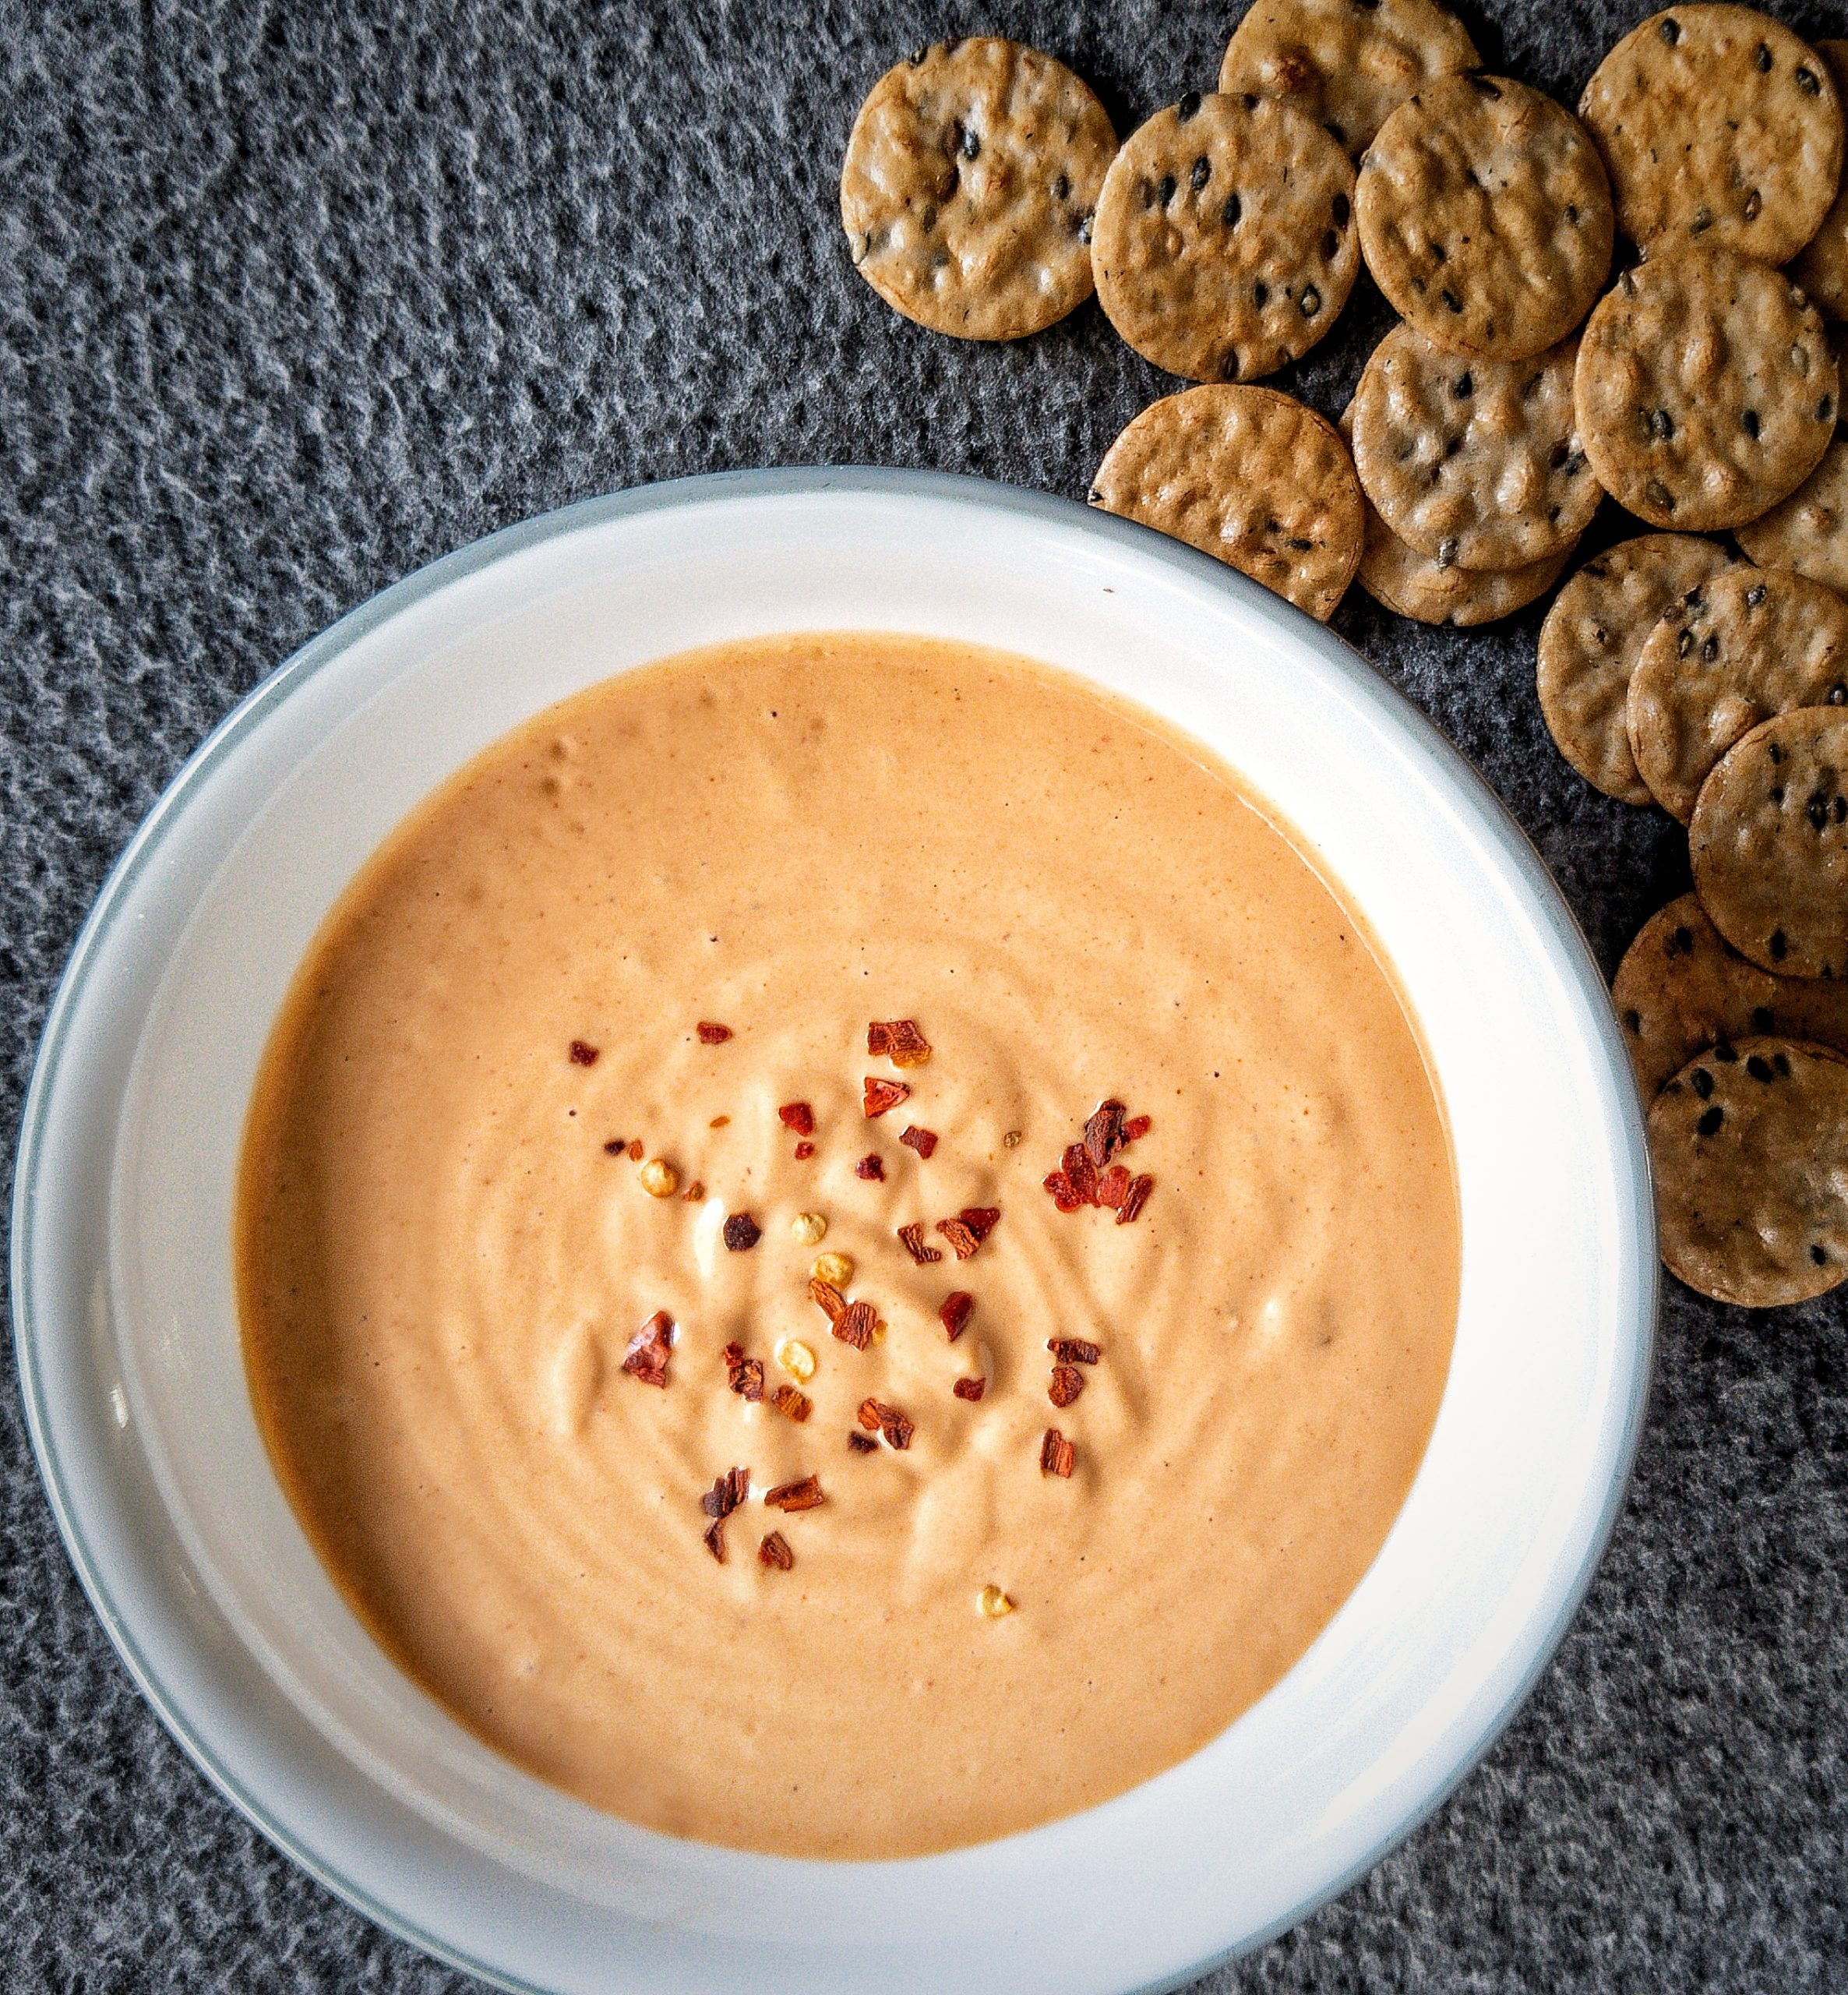 Cashew-based cheese sauce in a white bowl topped with a side of crackers